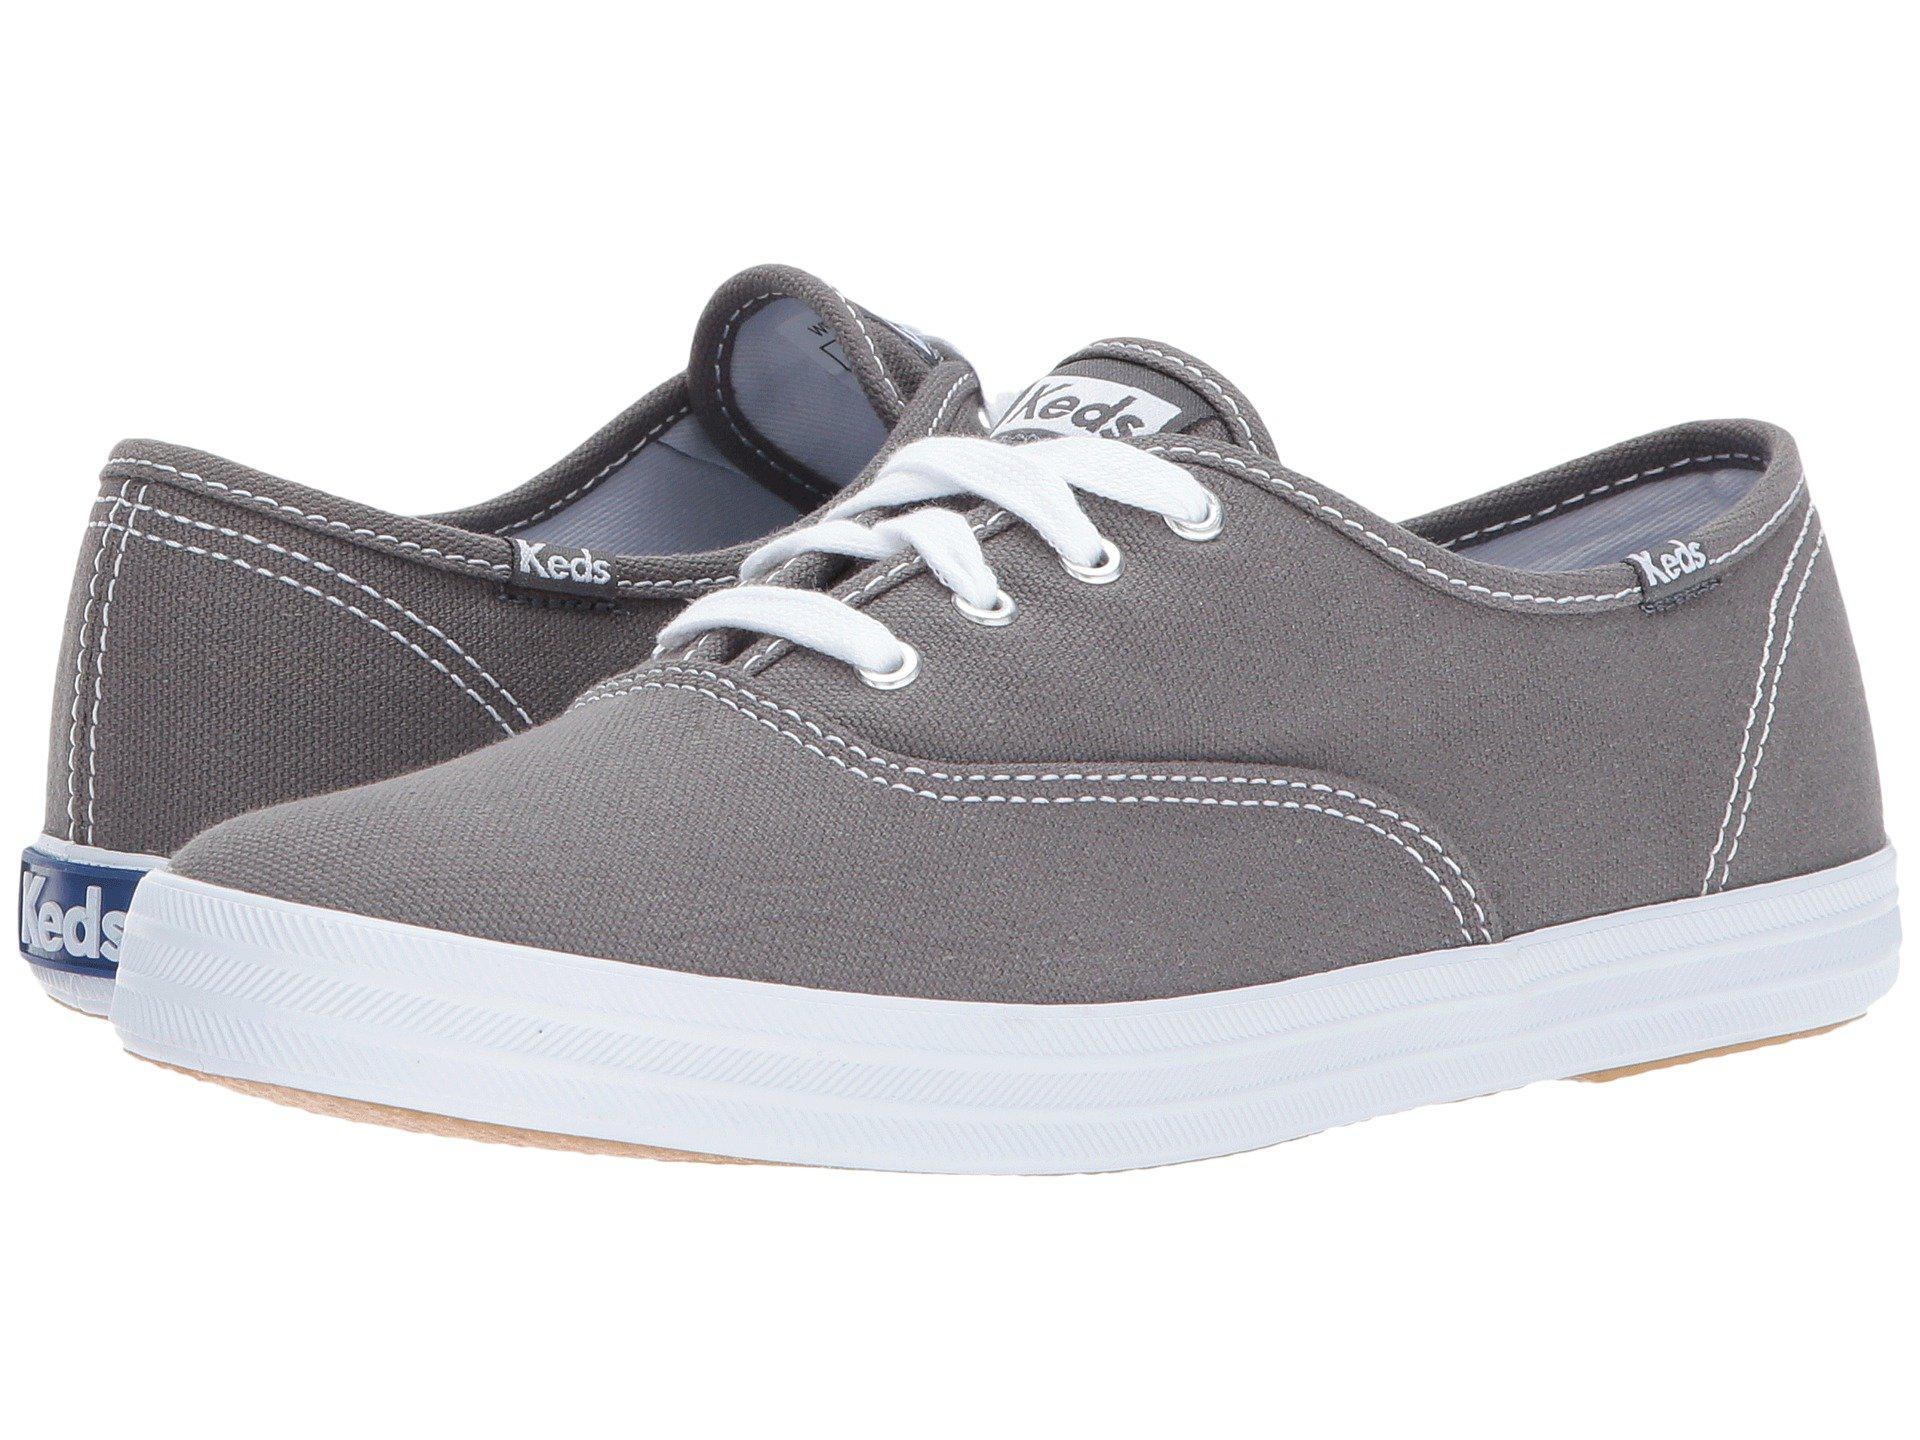 de997d9db97 Keds - Gray Champion-canvas Cvo (graphite) Women s Lace Up Casual Shoes  for. View fullscreen